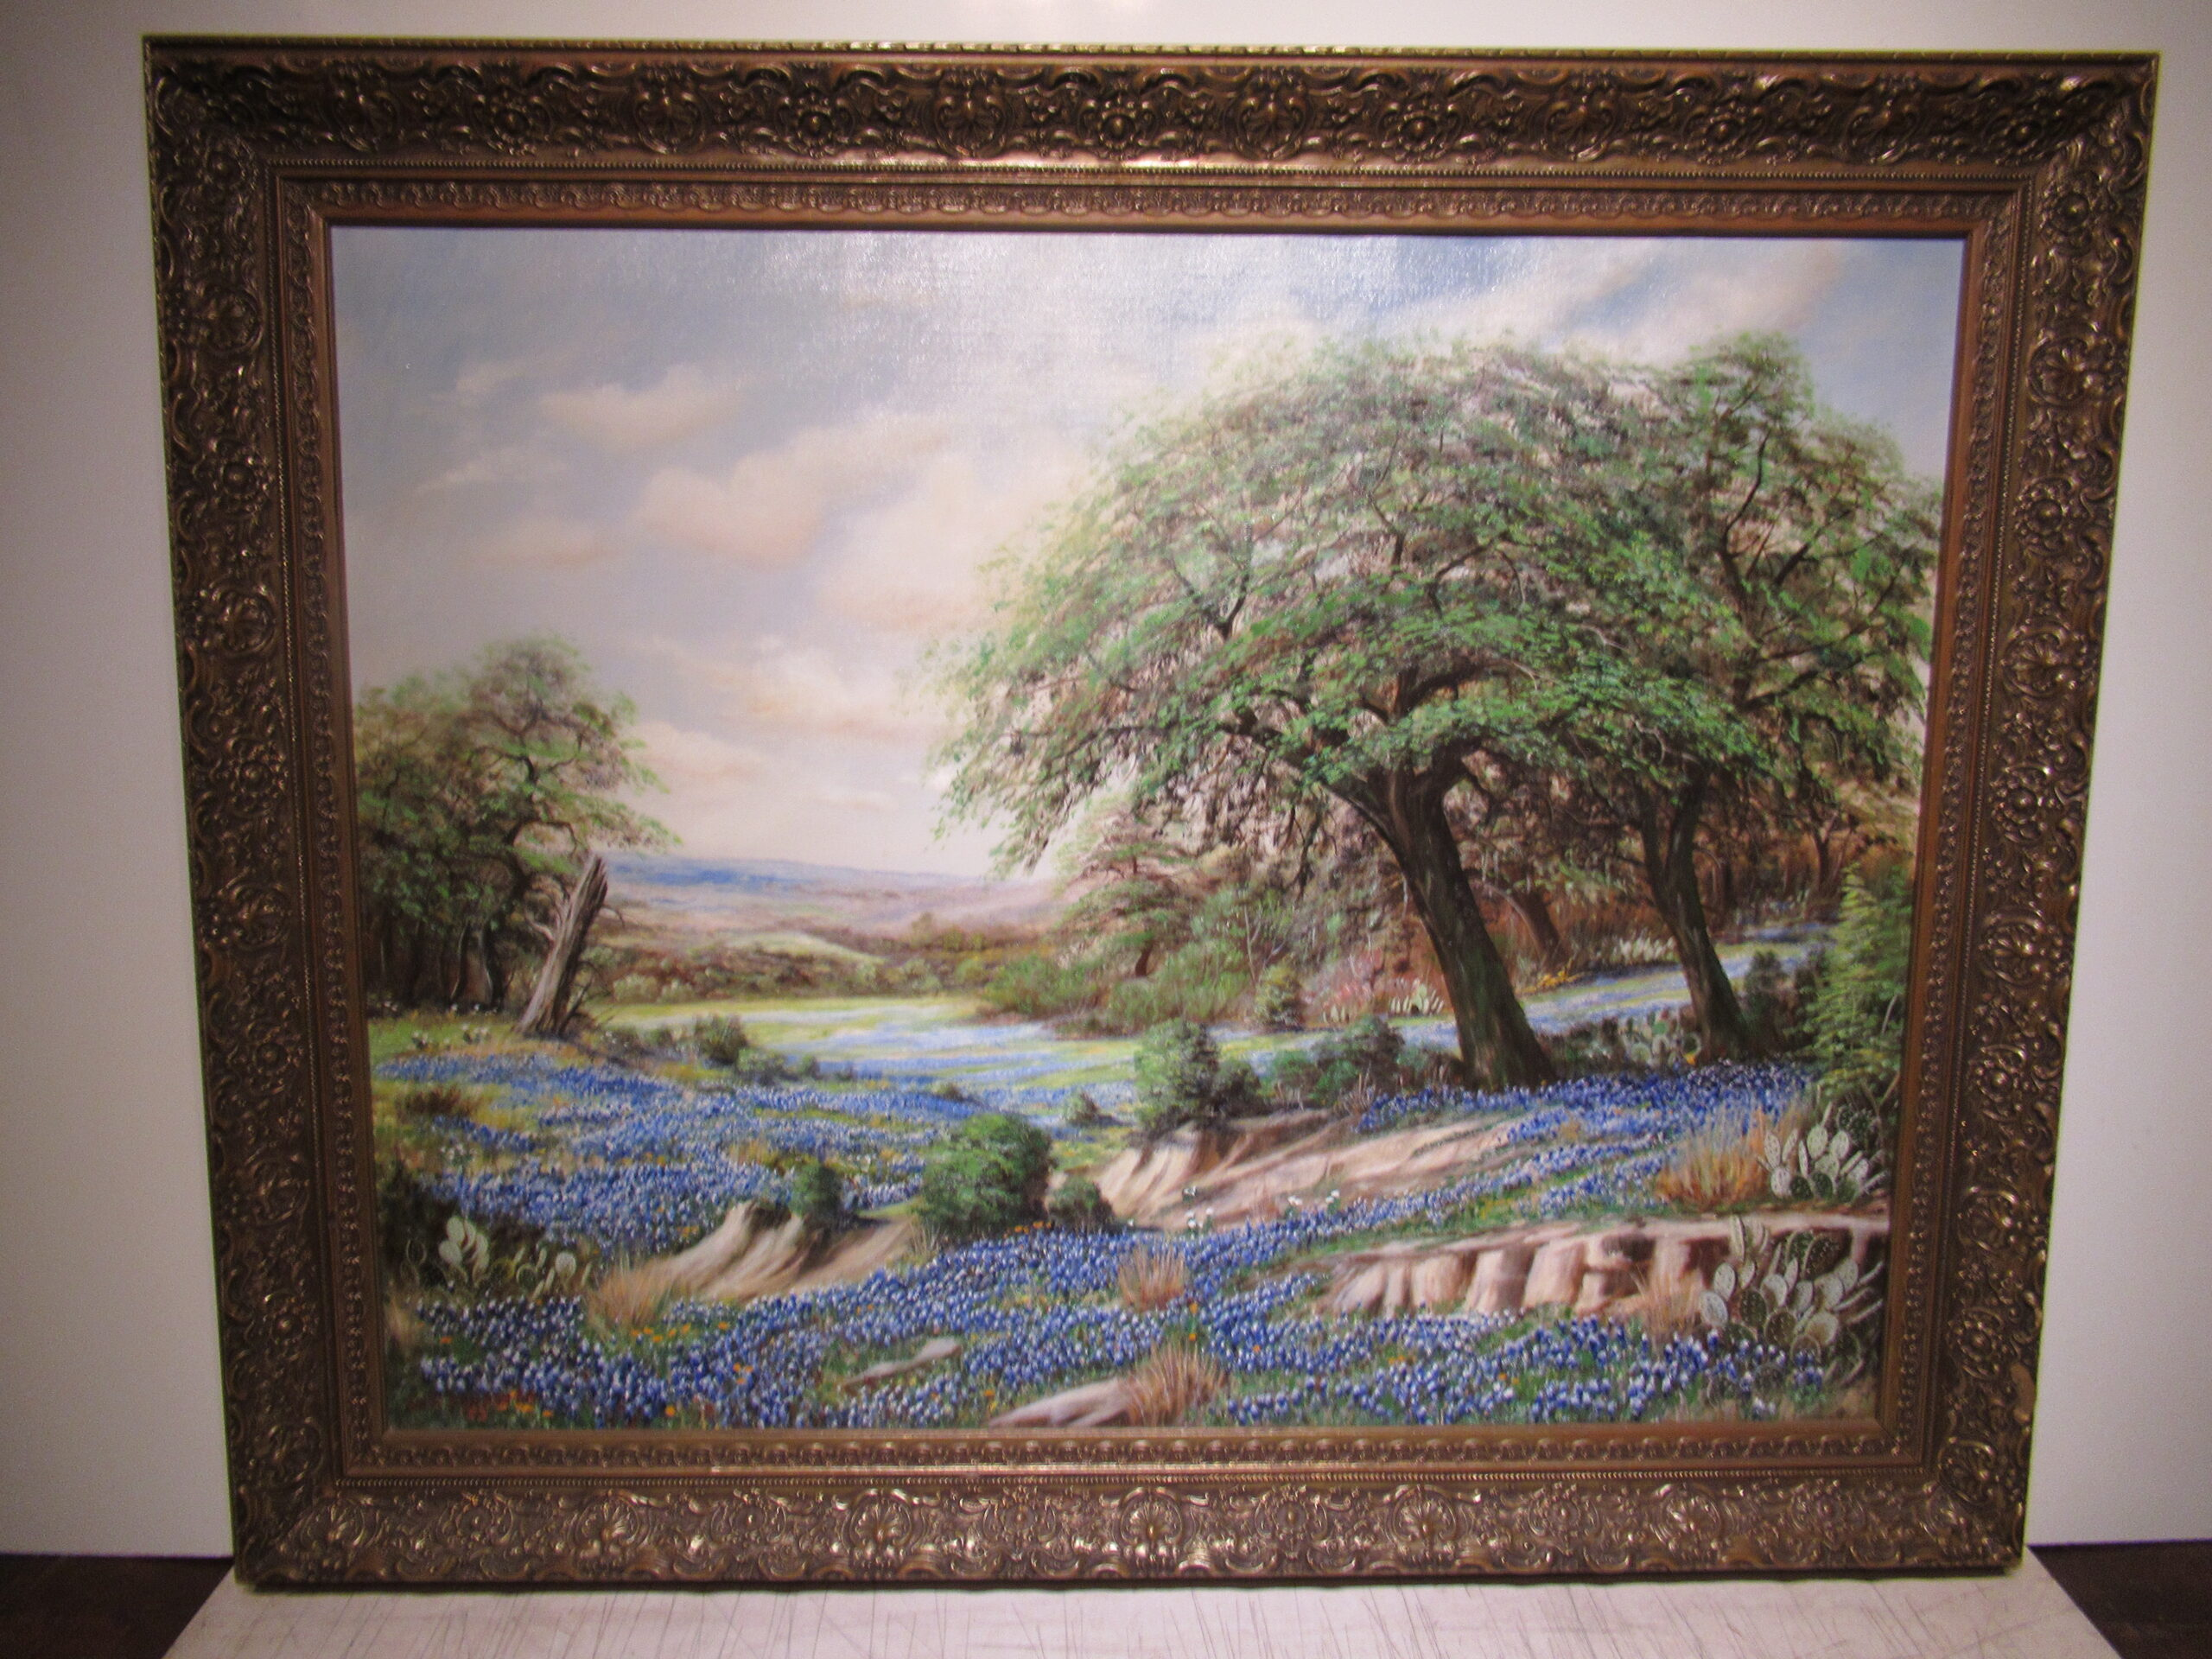 28×36 WR Thrasher 1940 Tx. Bluebonnet Oil Painting